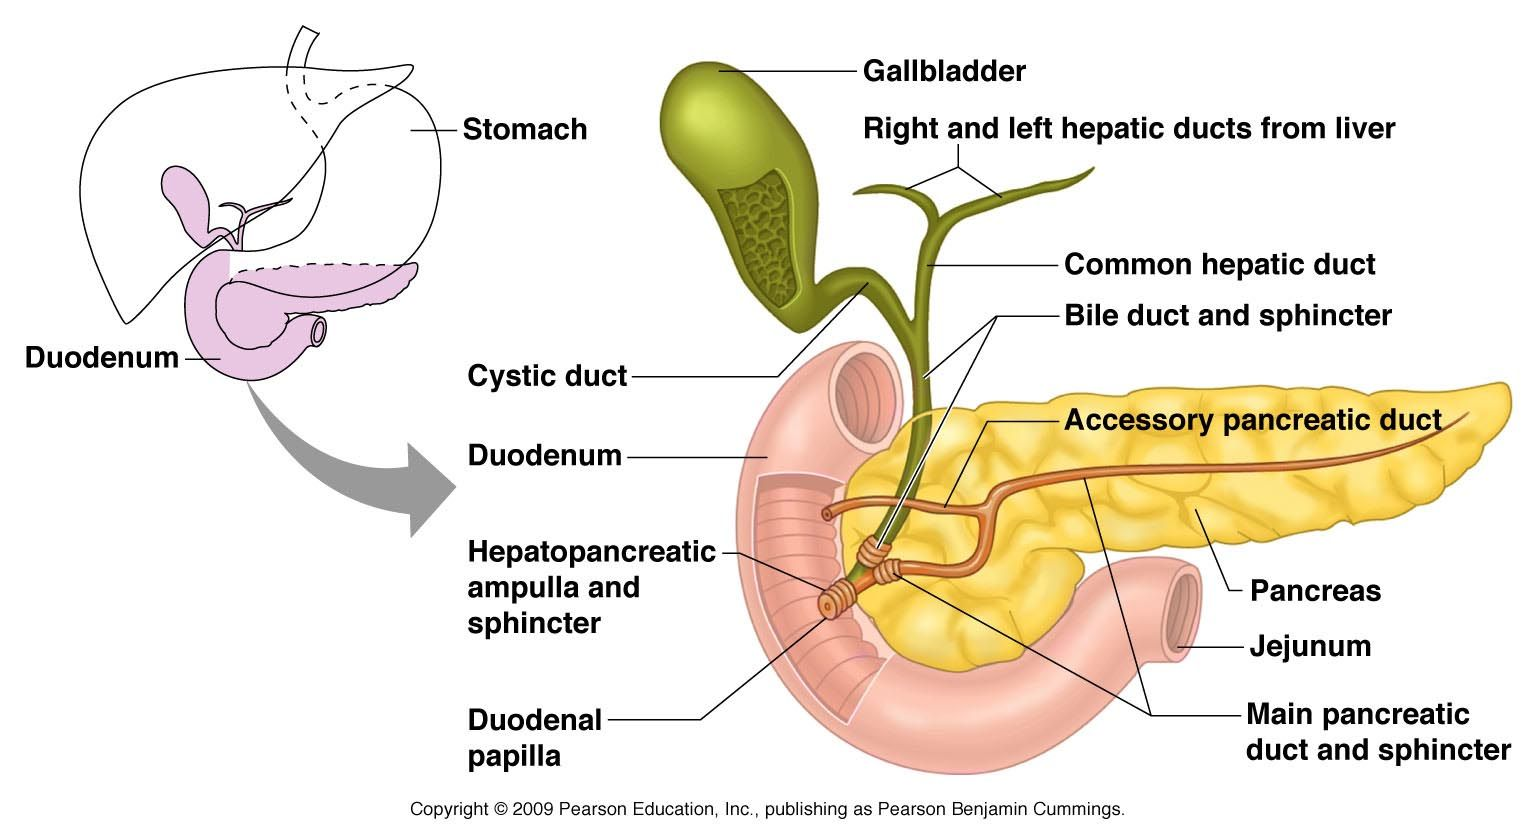 hight resolution of accessory organs of the digestive tract pancreas gallbladder liver duodenum and their ducts